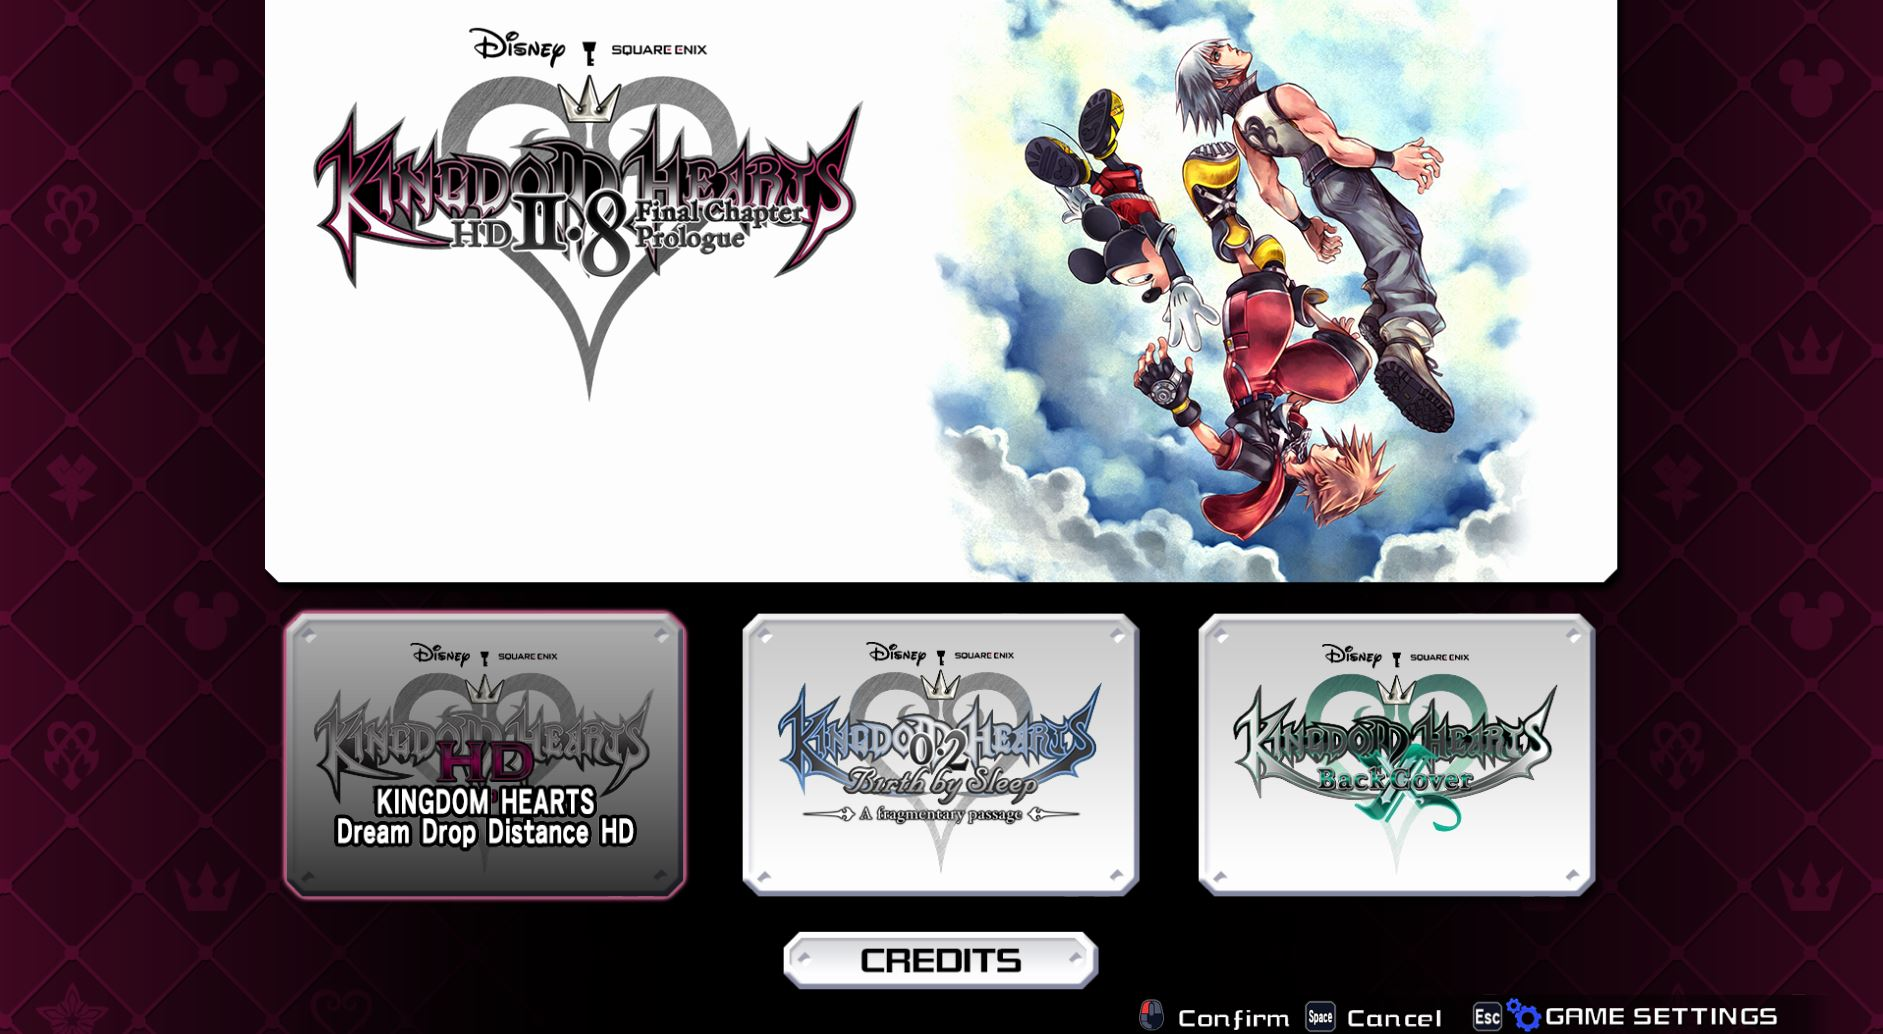 You can choose from a variety of Kingdom Hearts titles from one screen.